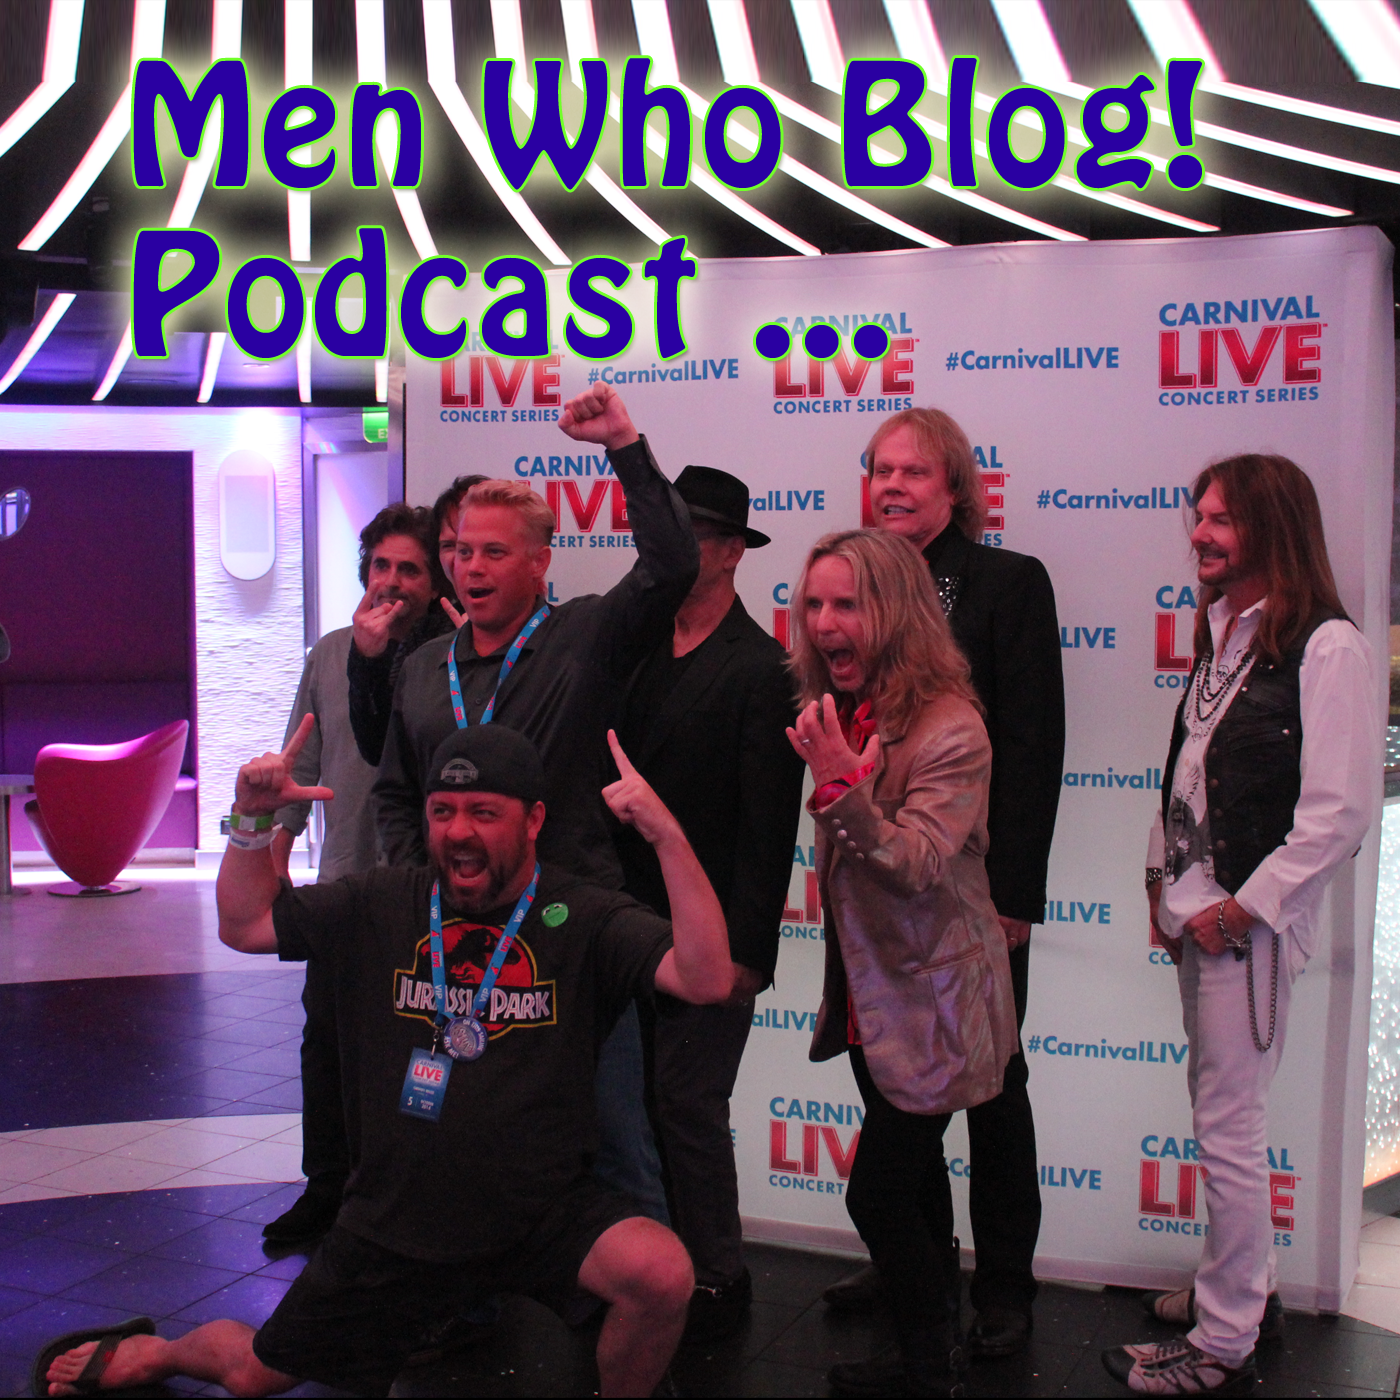 Men Who Blog Podcast